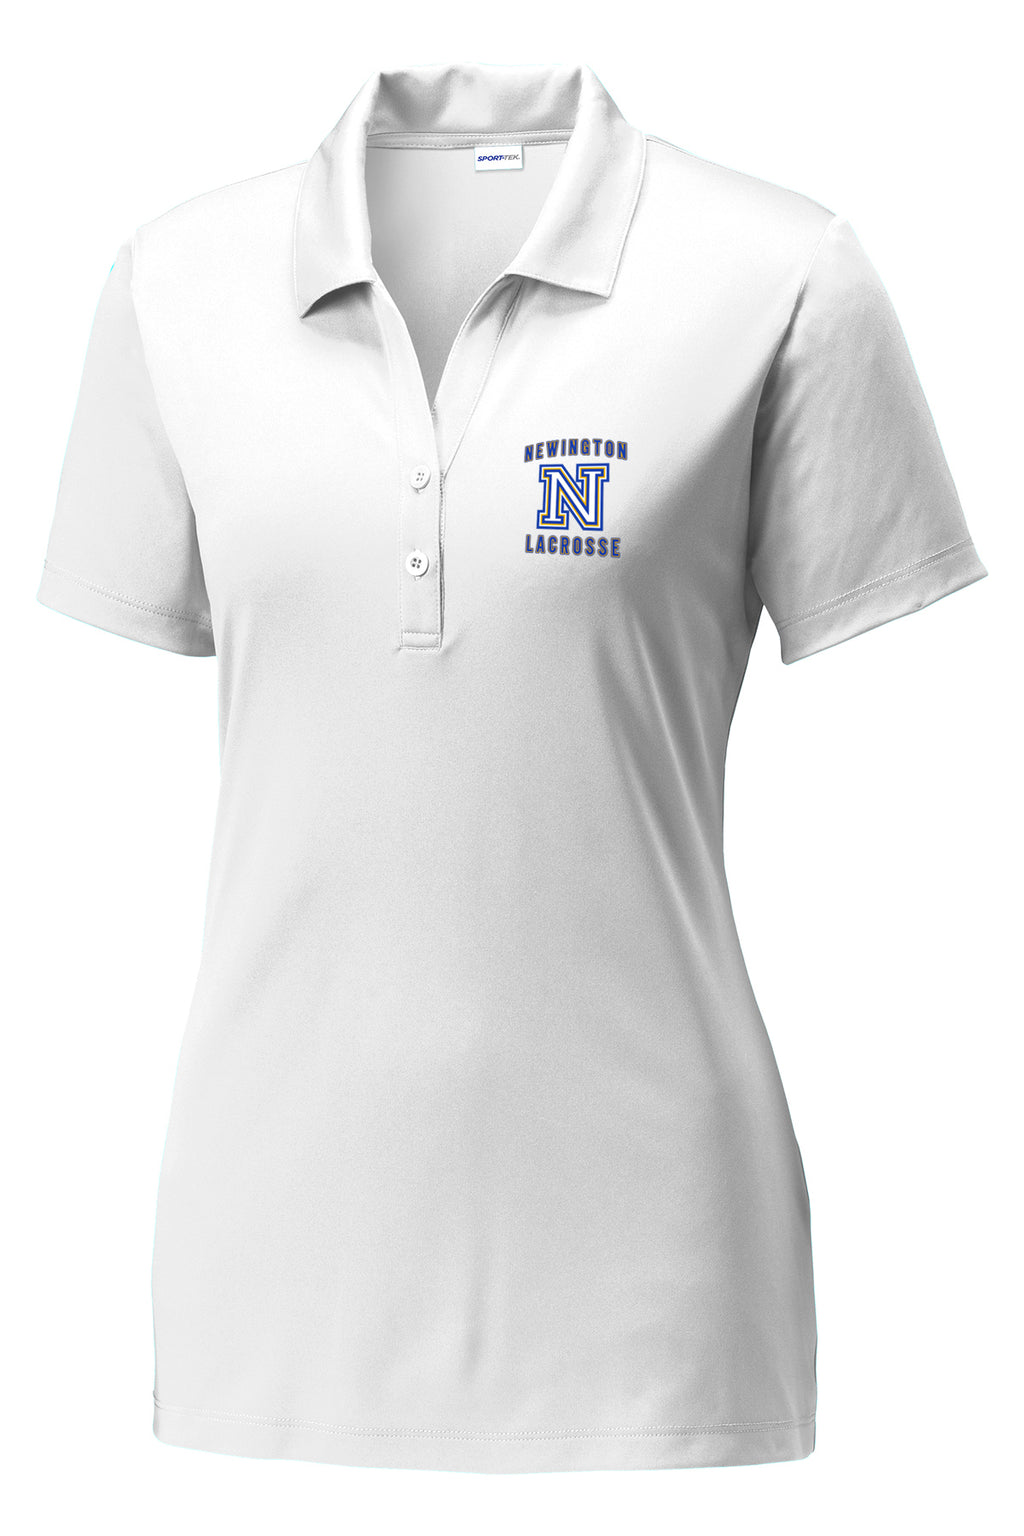 Newington Lacrosse Women's White Polo